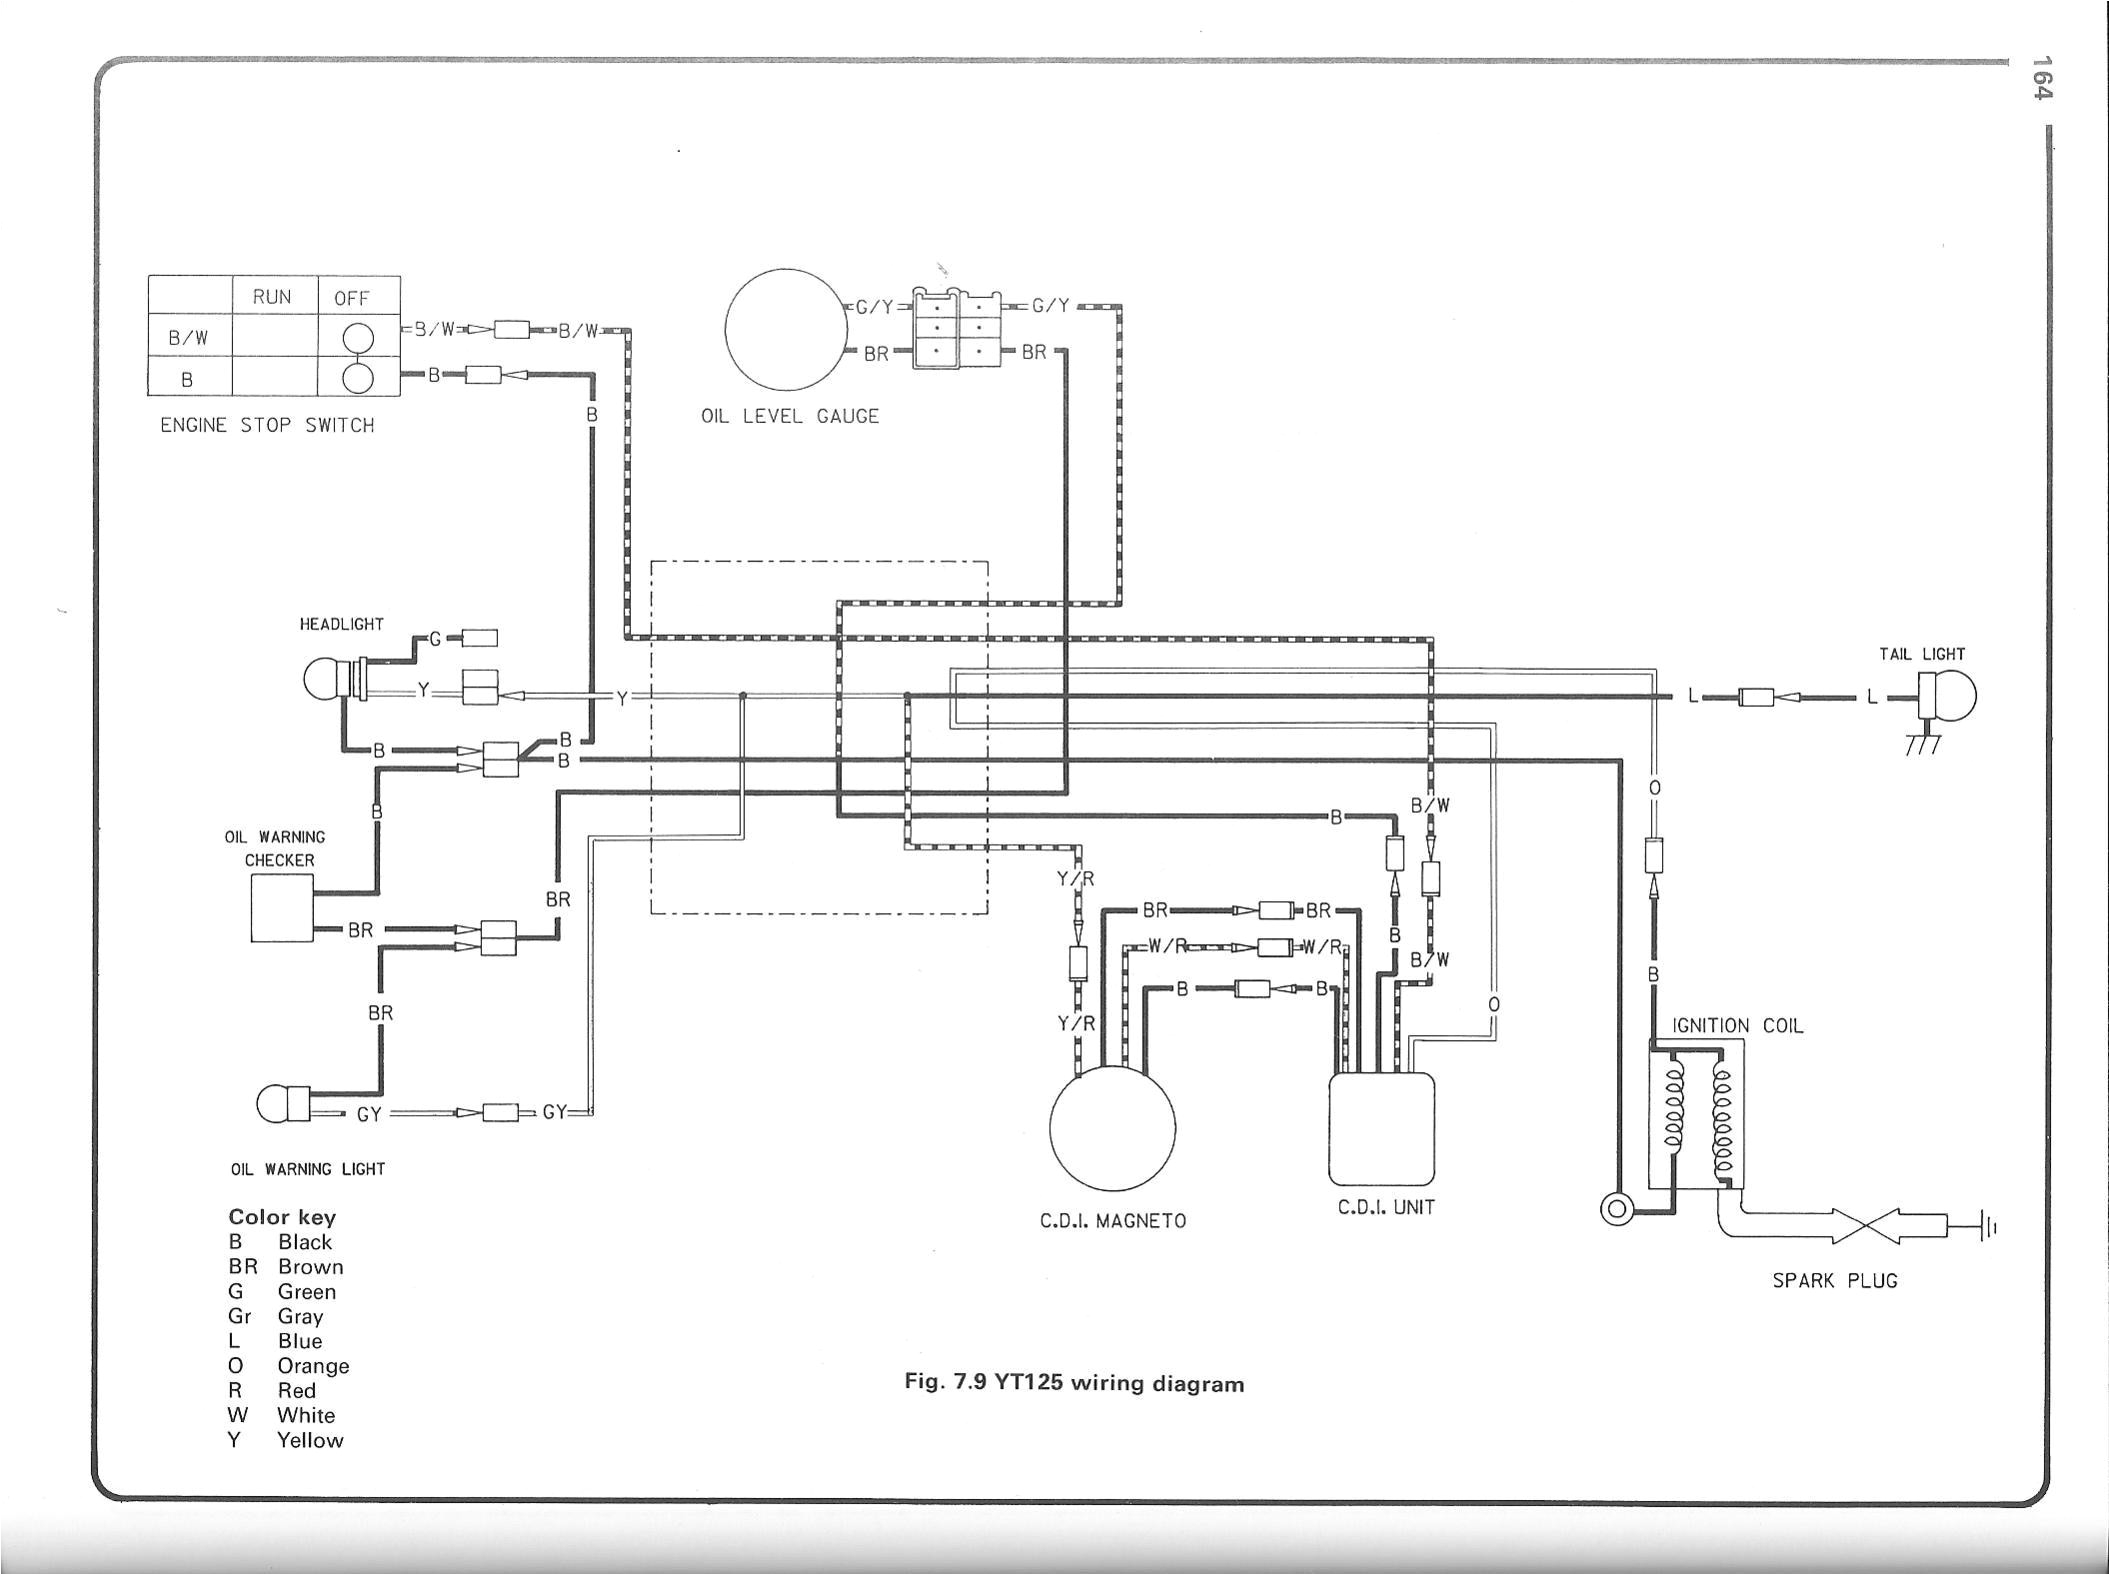 wiring diagram for yamaha moto 4 80 inspiration 3wheeler world yt125 ampquottri motoampquot of 9